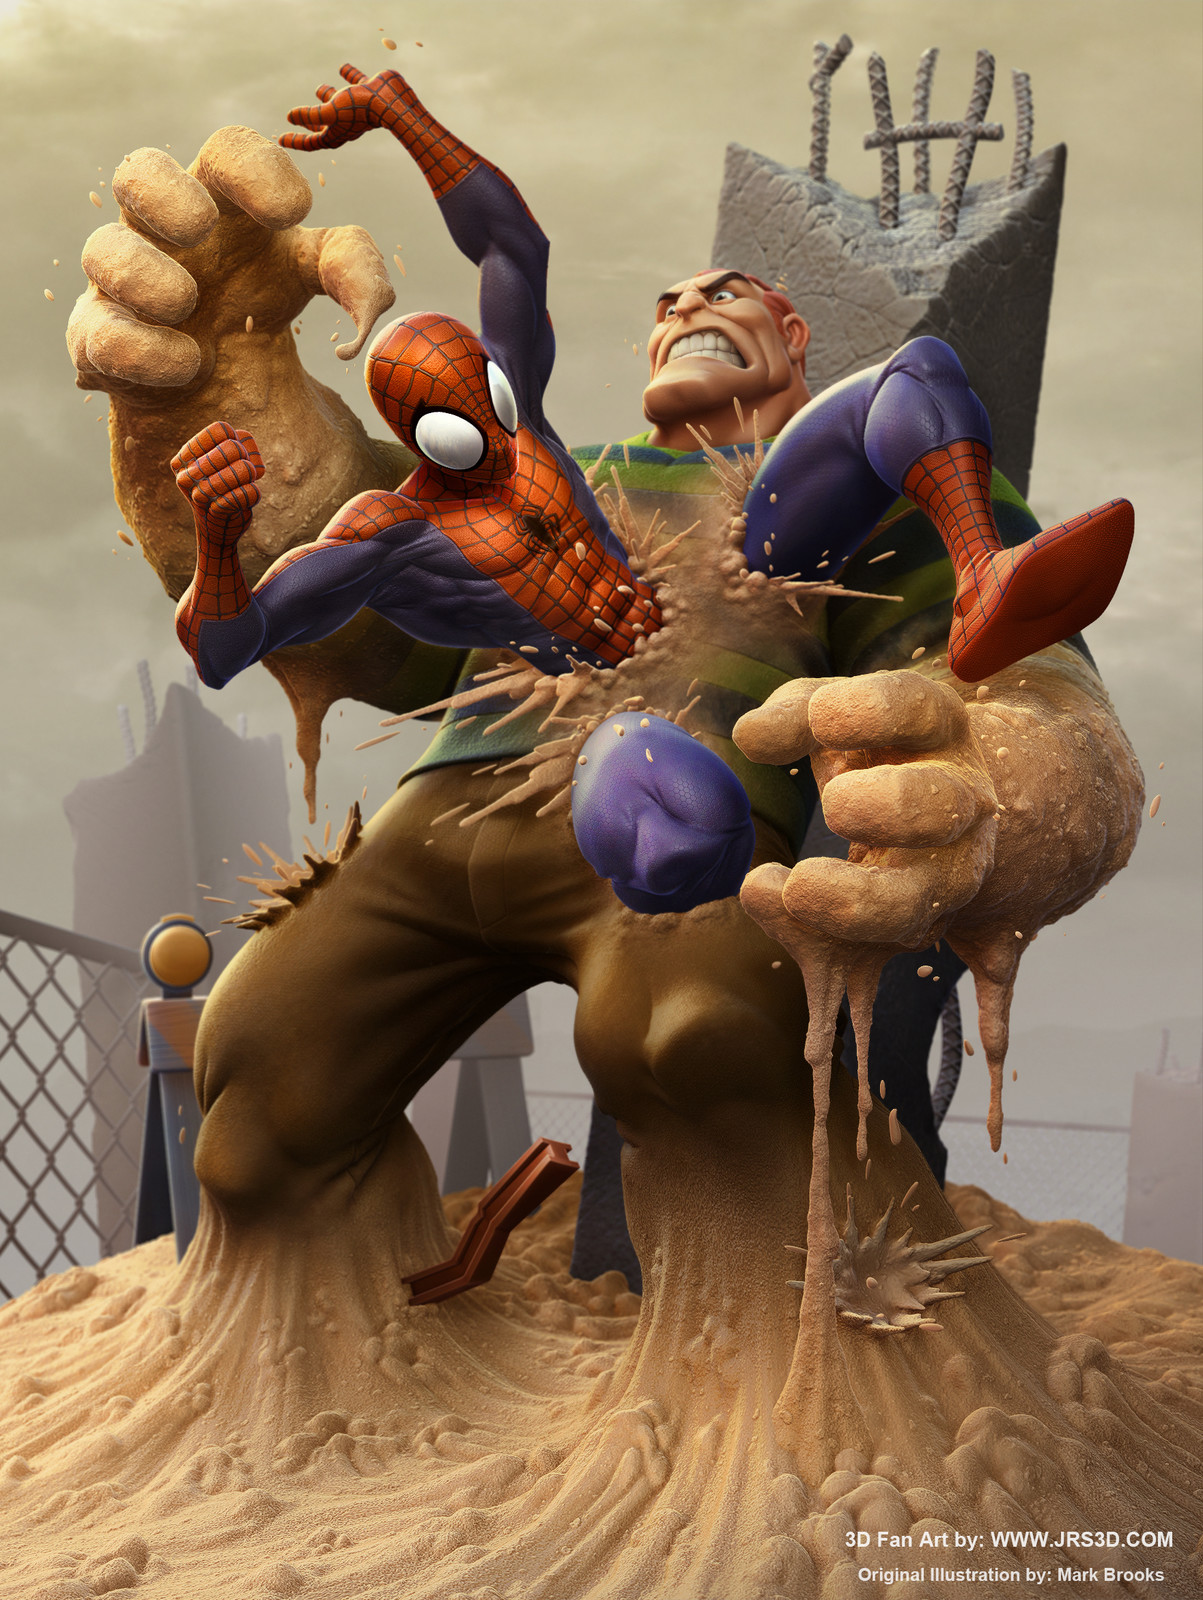 Spiderman Vs Sandman_FanArt